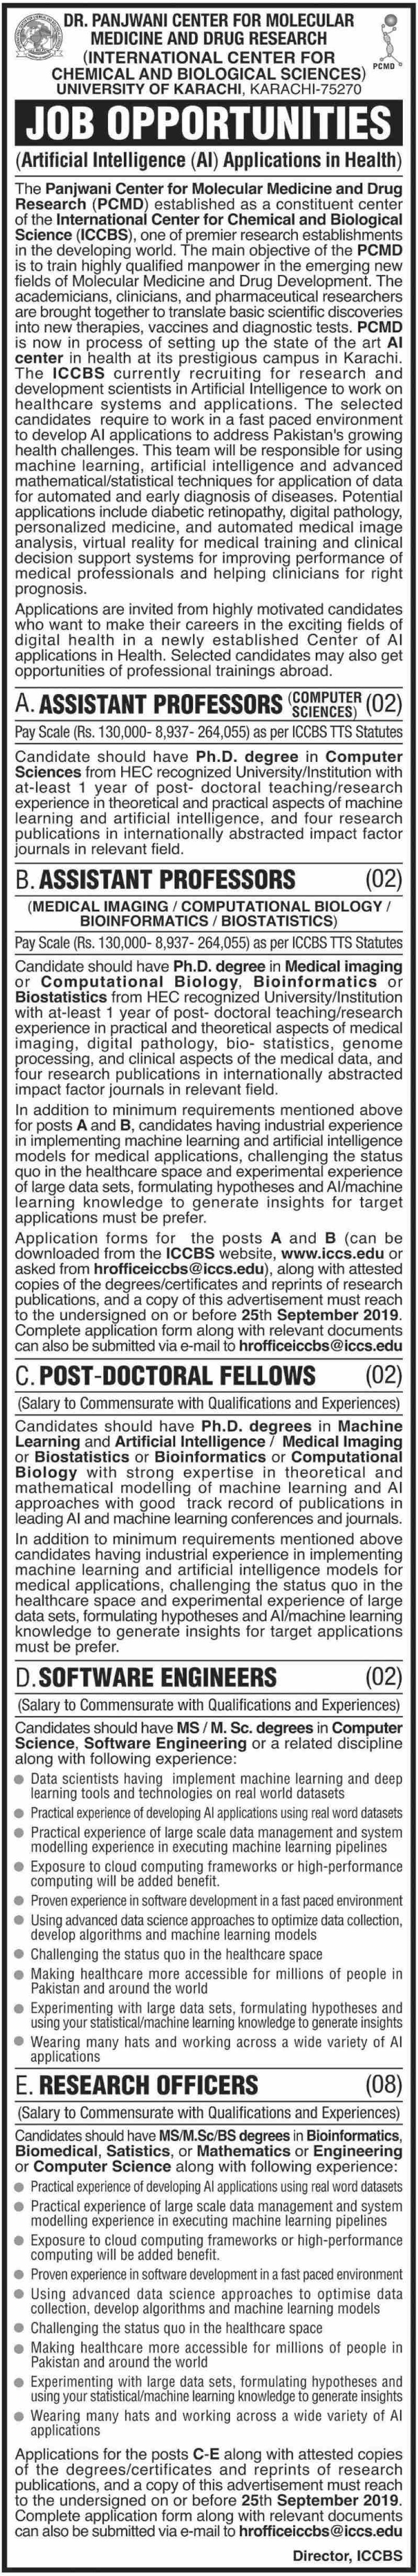 University of Karachi Jobs 2019 Application Form